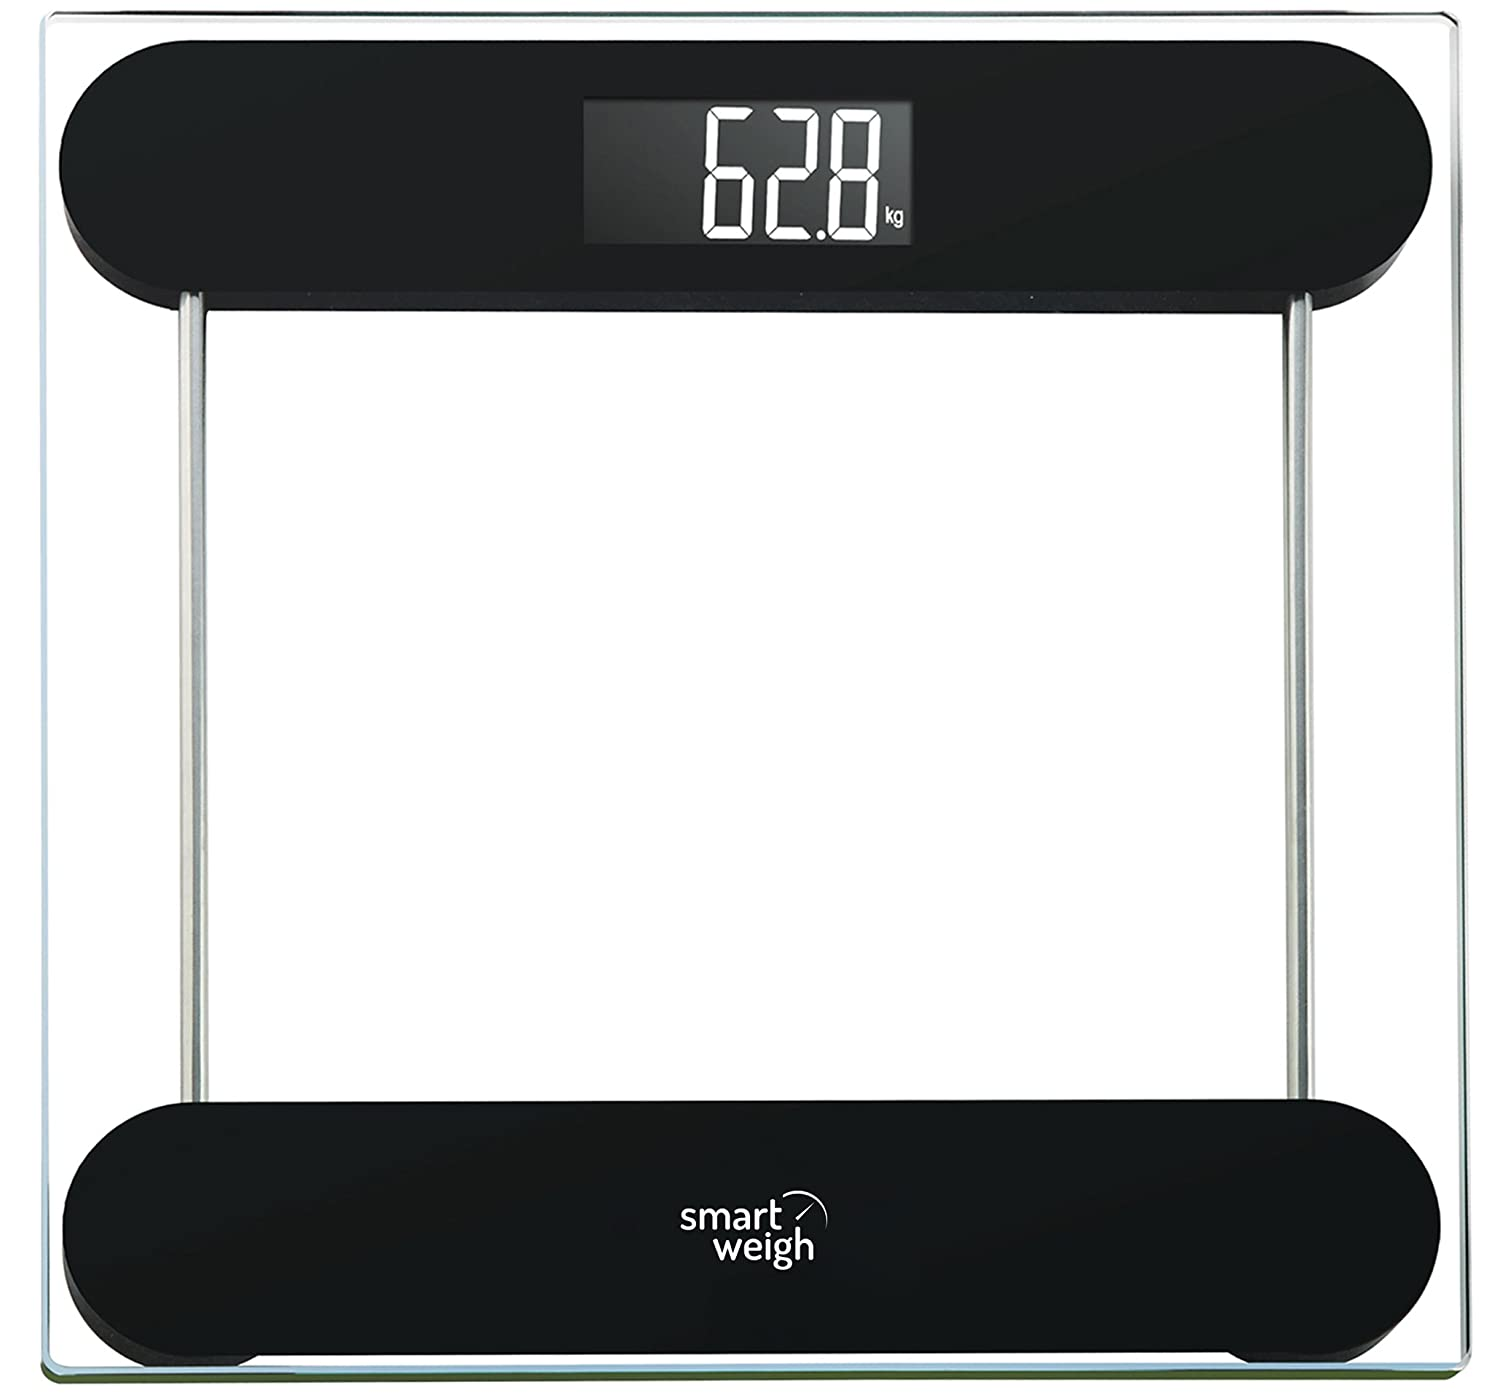 Bathroom scales best rated - Smart Weigh Black Precision Digital Vanity Bathroom Scale Amazon Co Uk Health Personal Care